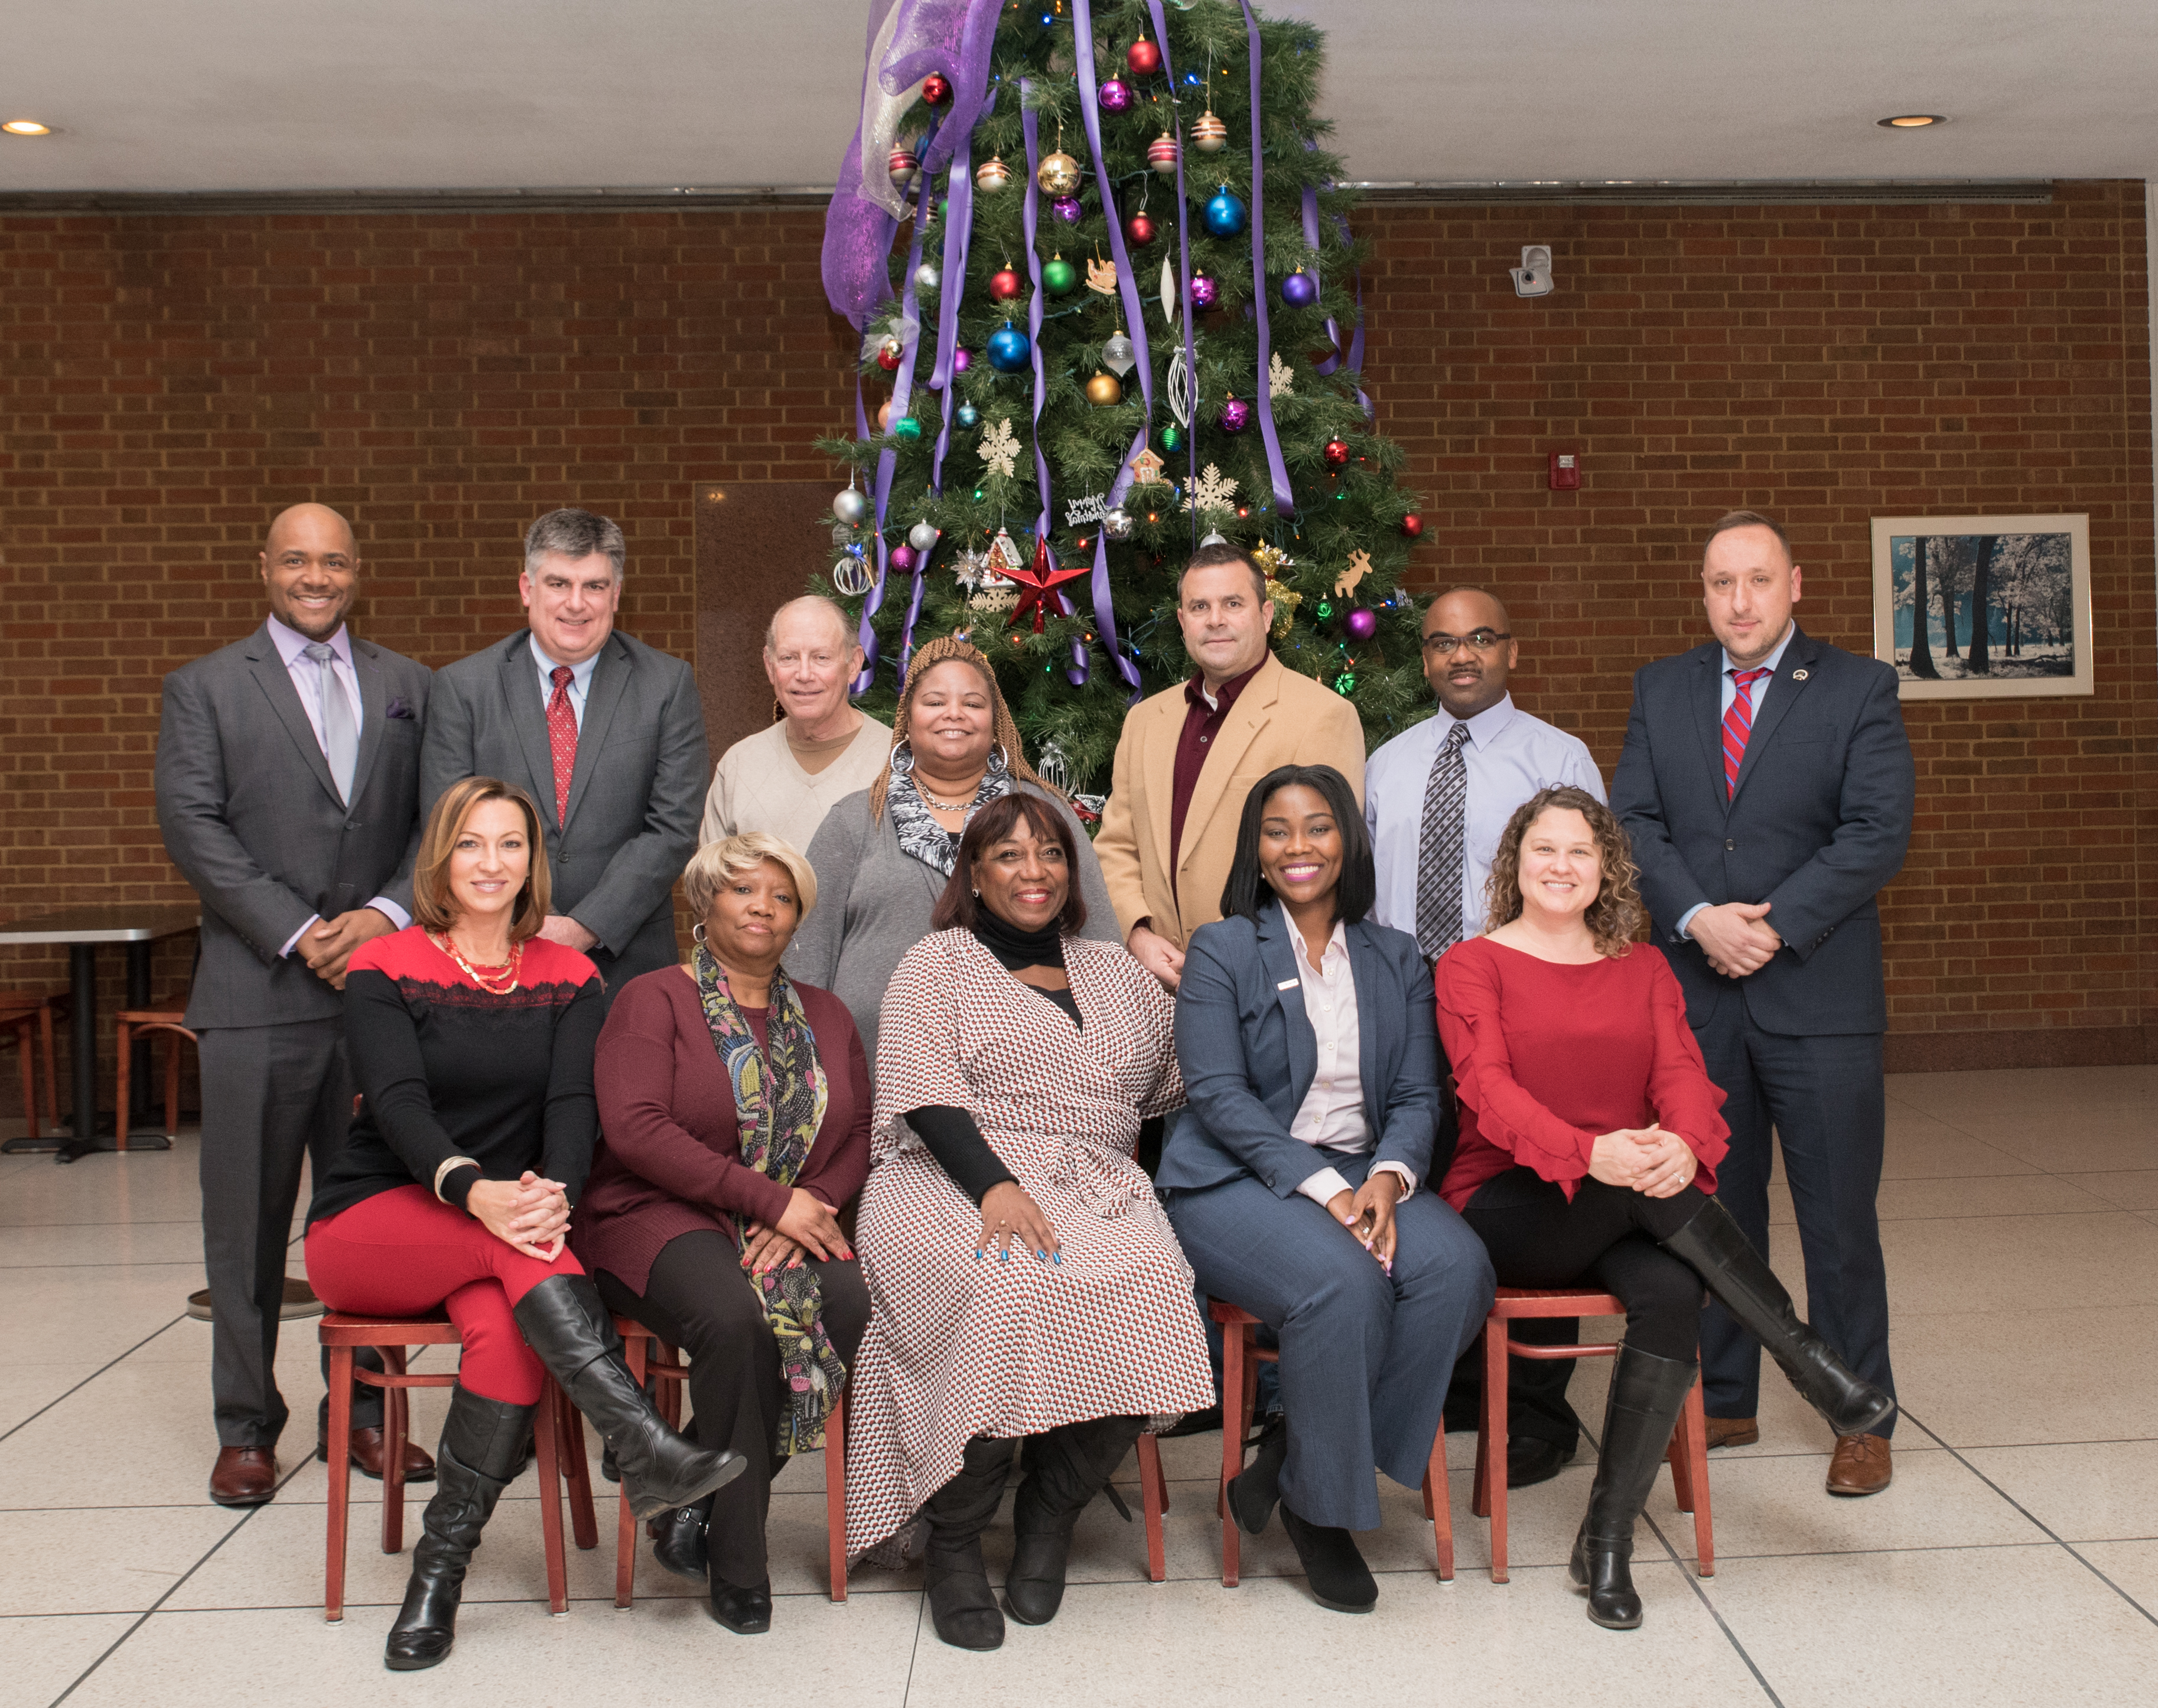 Happy Holidays from the Civilian Oversight Board Members and Staff